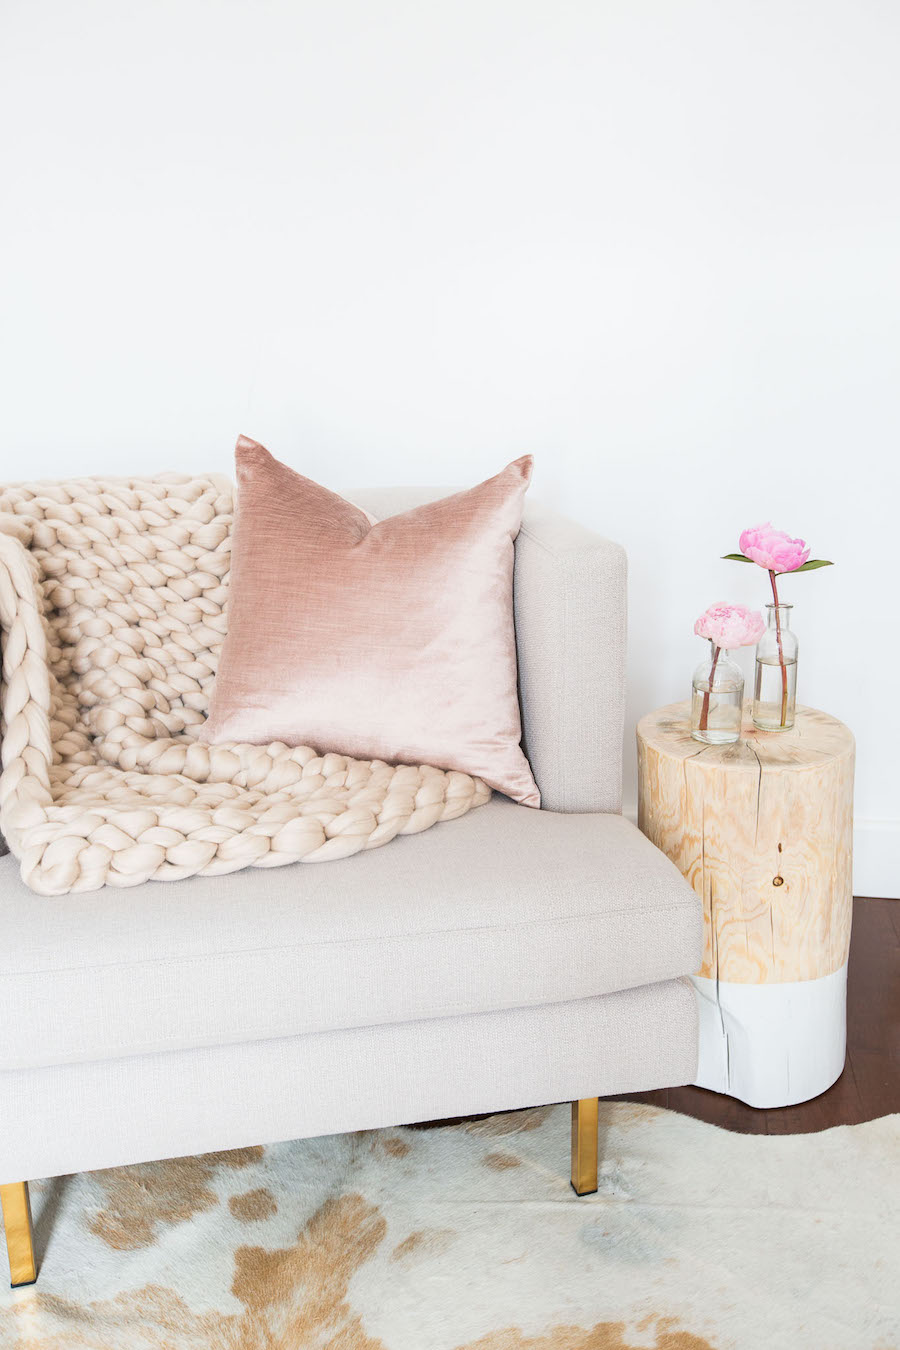 Chunky knit throw and soft pink satin pillow